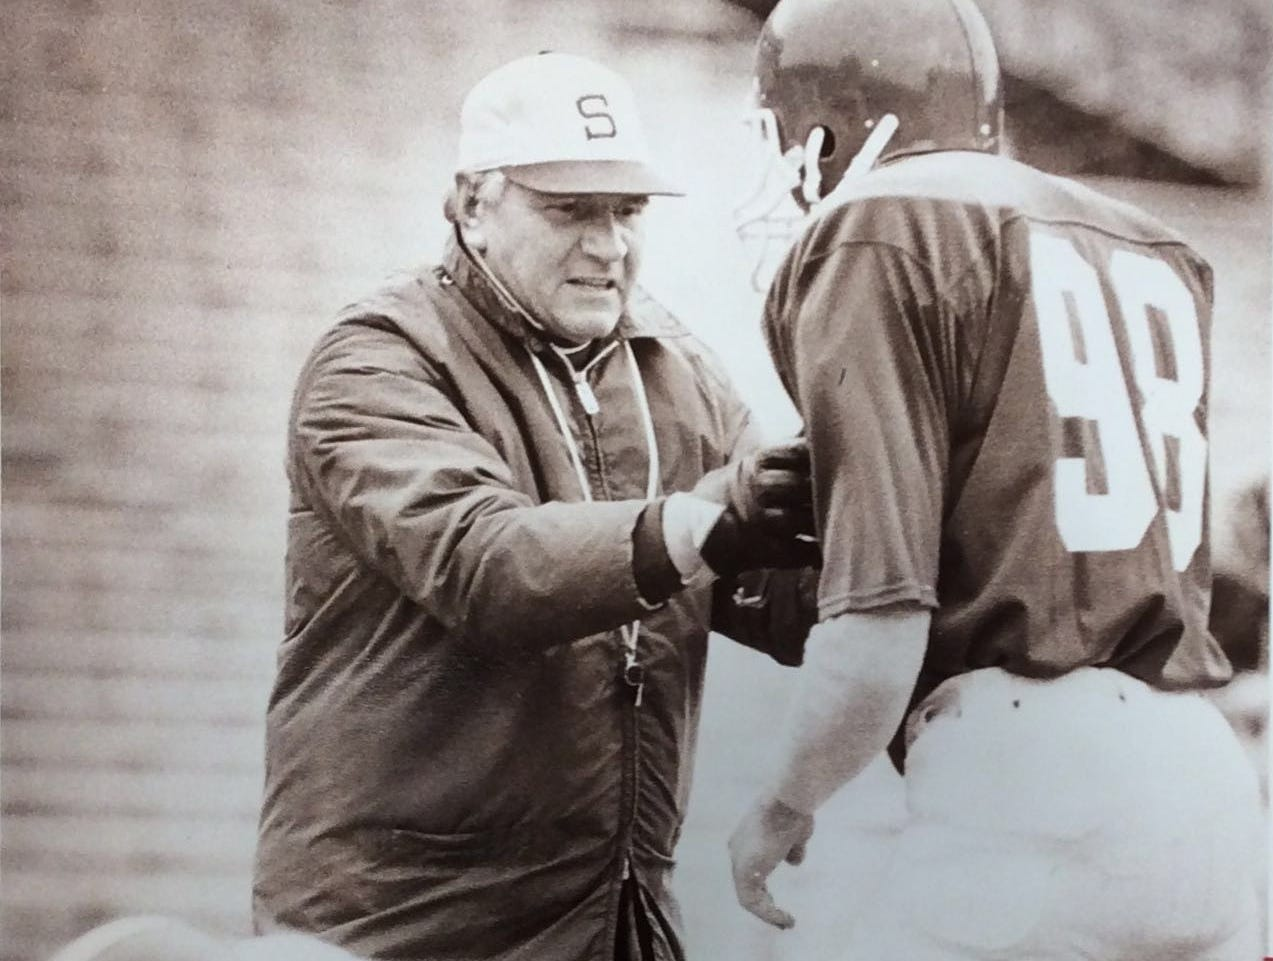 MSU Football Coach George Perles shows 98 how to position himself in a practice drill, undated photo.